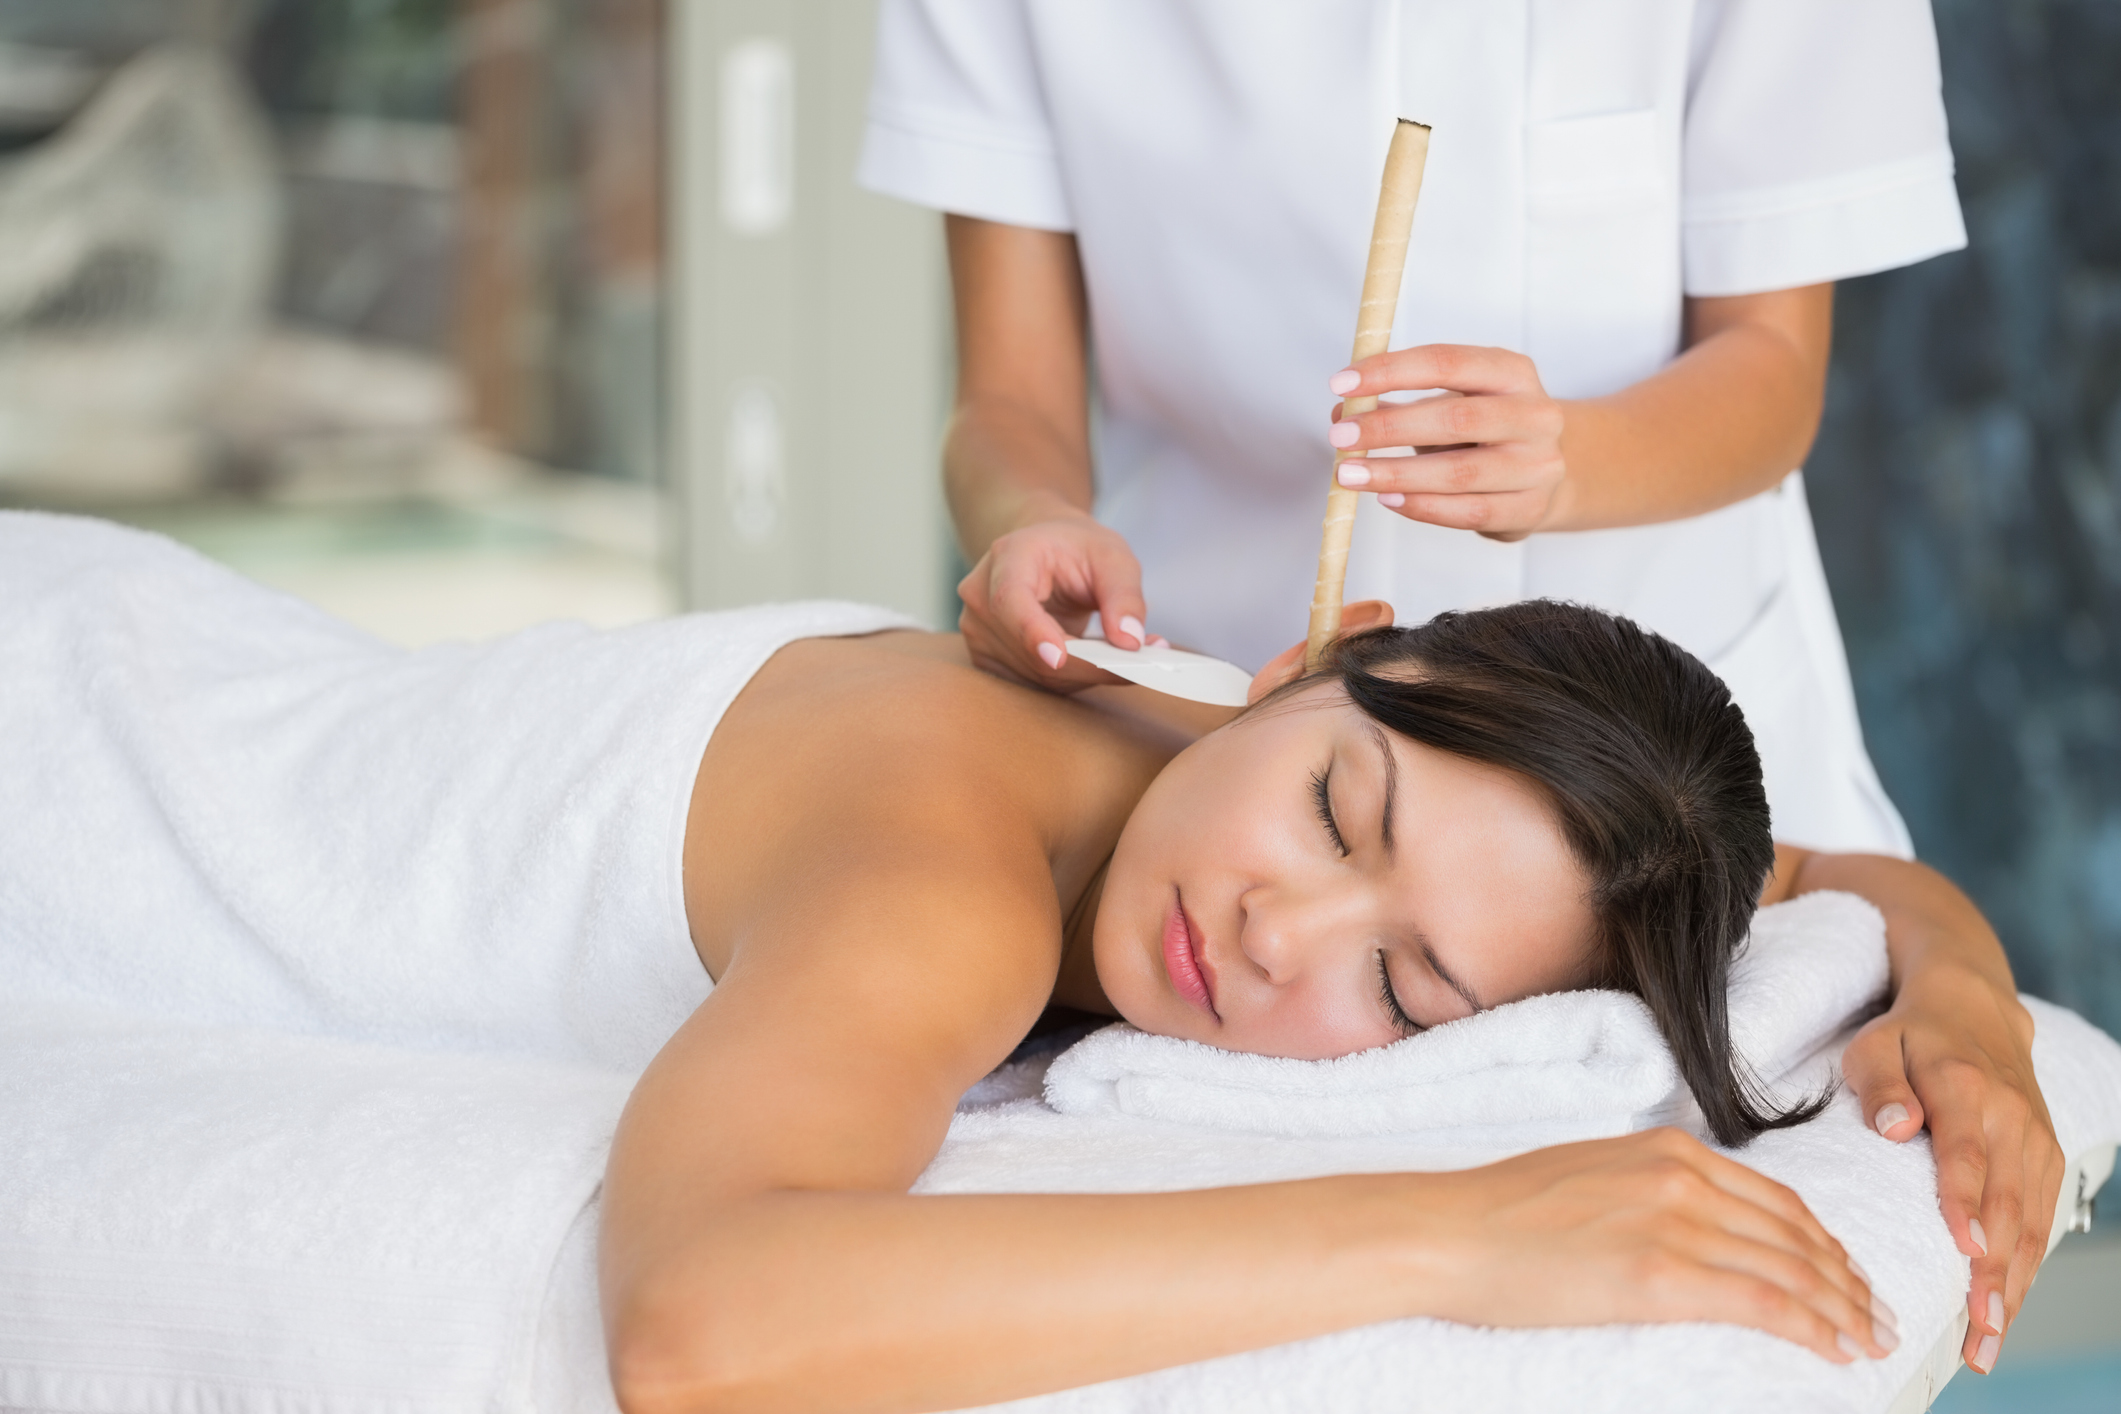 Ear Candles Don't Work, Not Just That, They are Actively Dangerous!